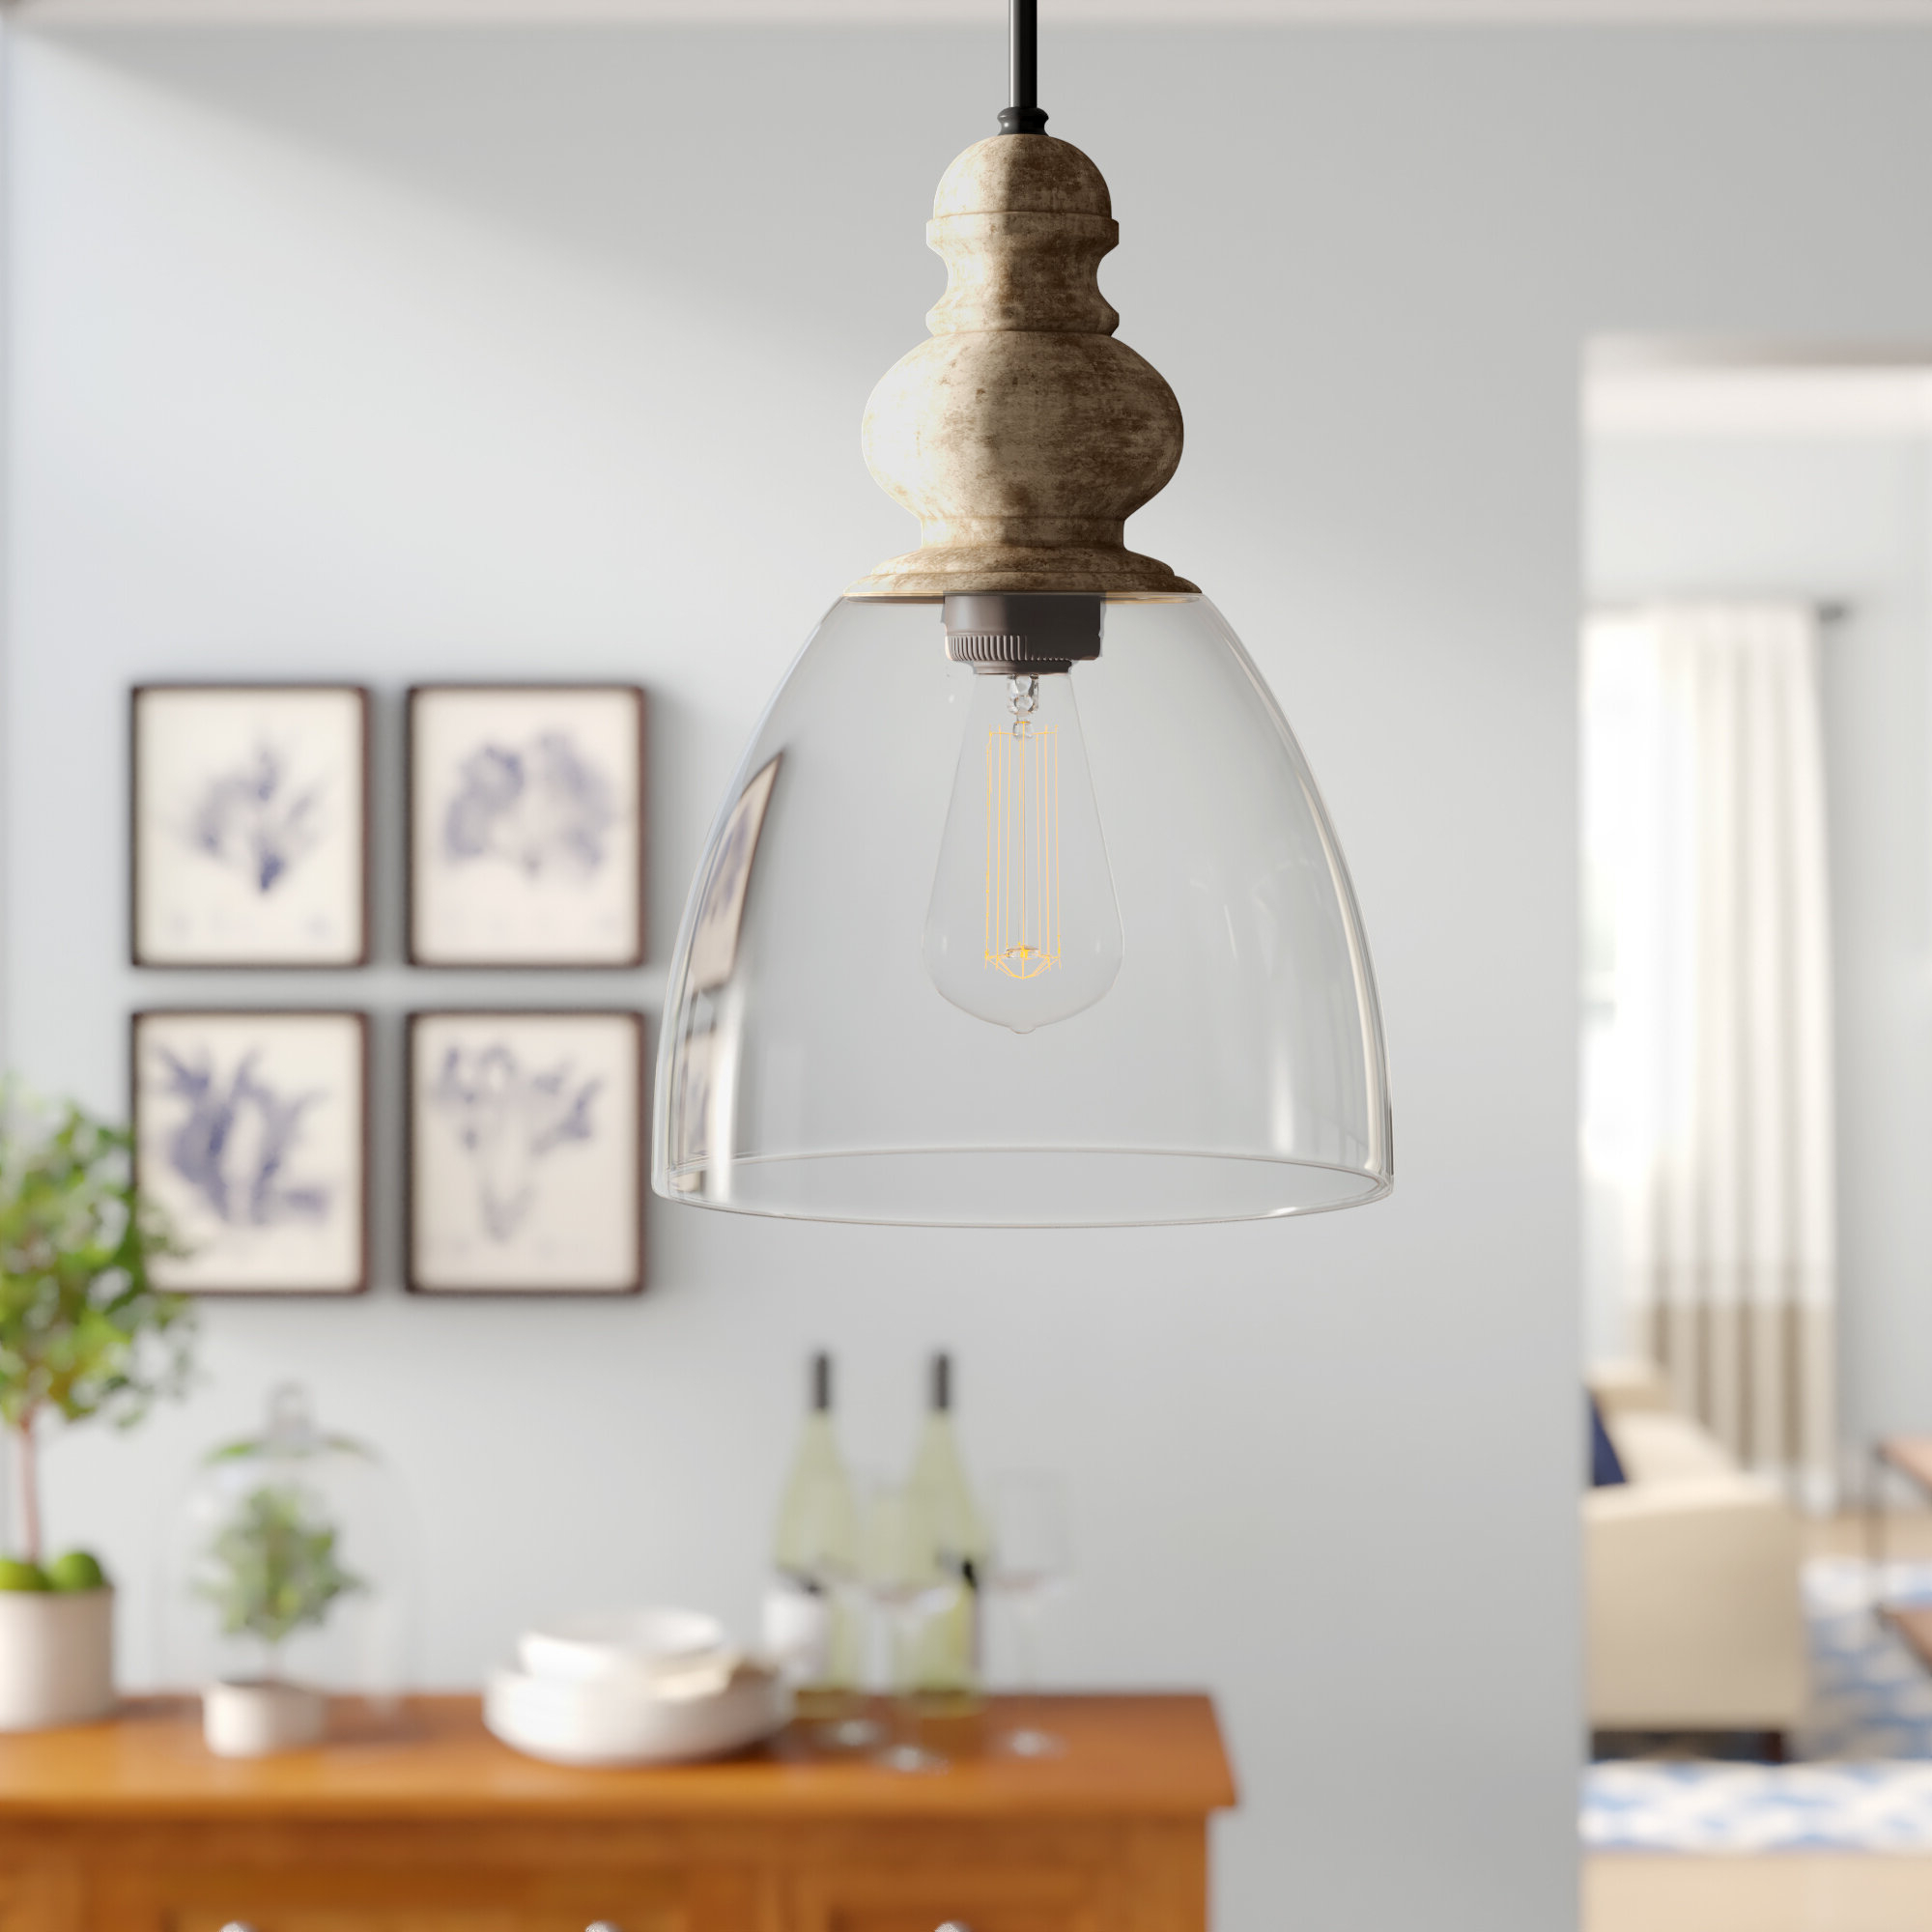 Laurel Foundry Modern Farmhouse Lemelle 1 Light Single Bell Pendant Intended For Favorite Bundaberg 1 Light Single Bell Pendants (View 12 of 20)